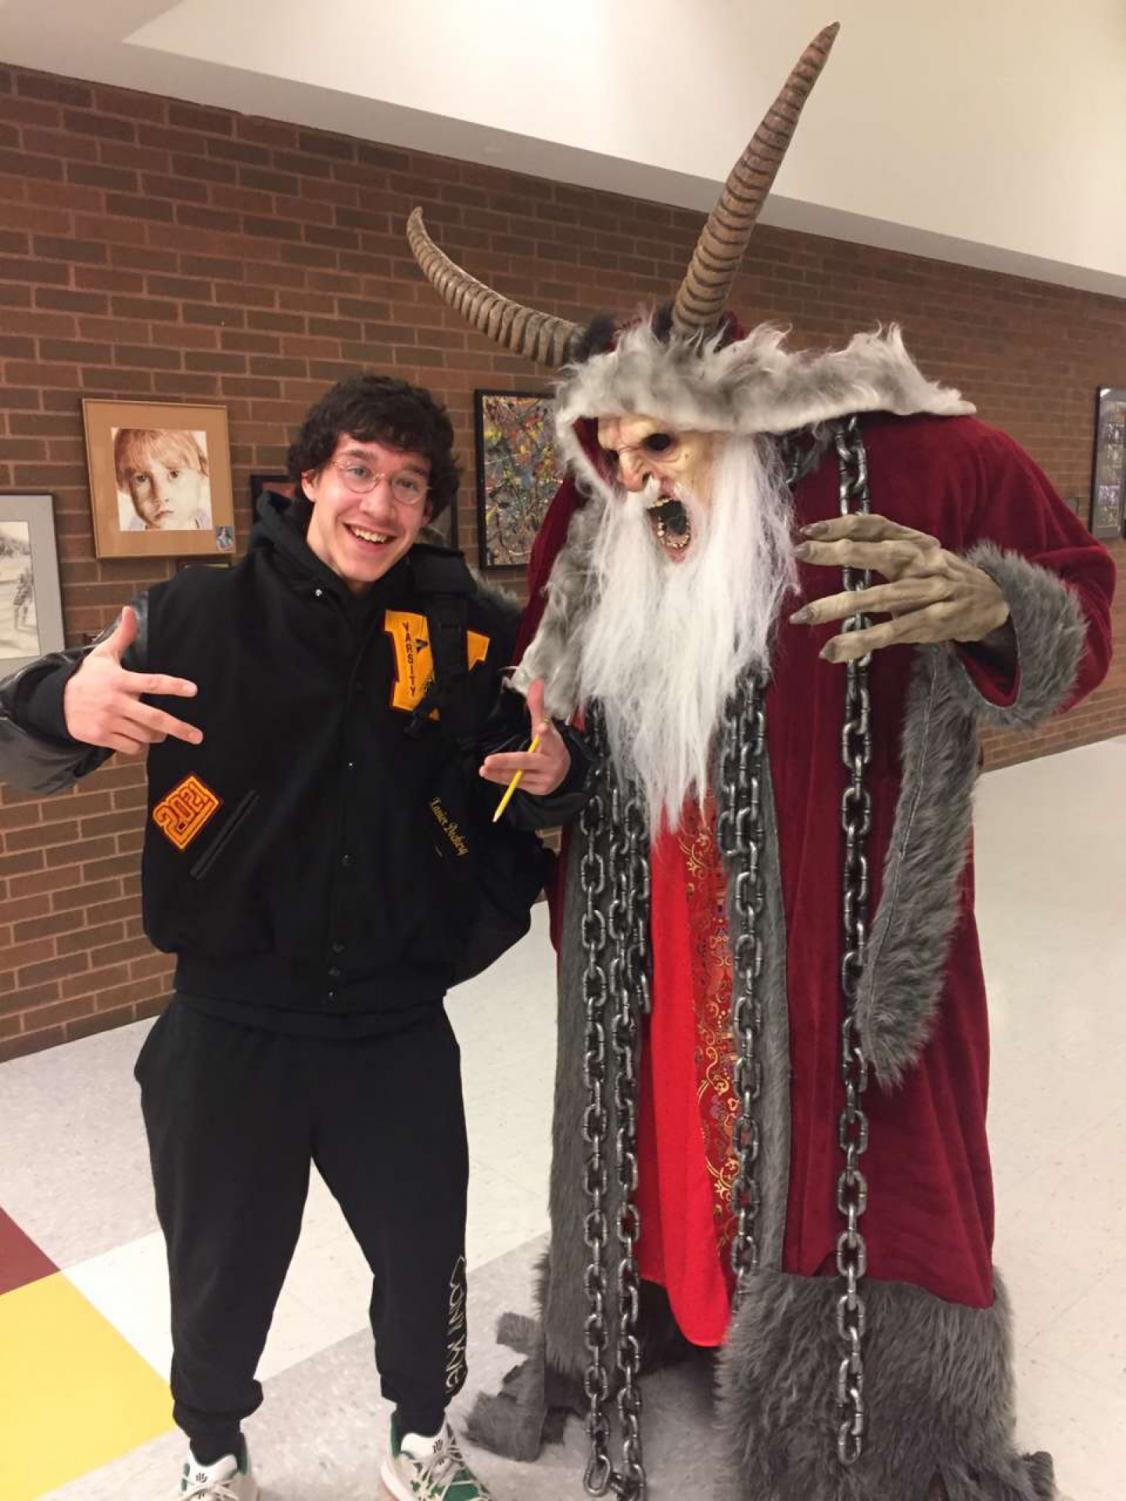 Xavier Dockery posing with Dr. Hartnell in his Krampus outfit.